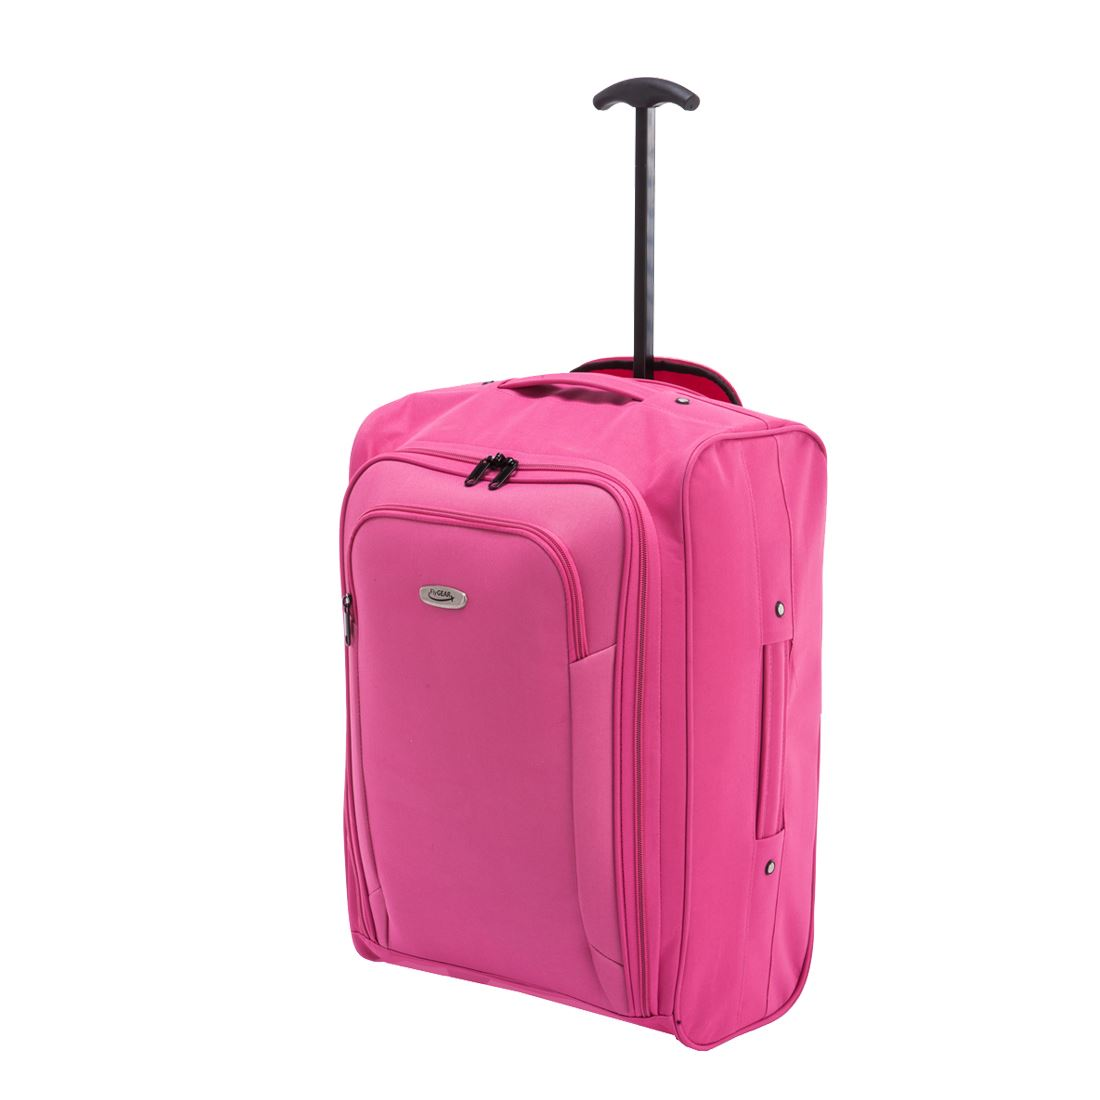 Hand Luggage Approved Bags